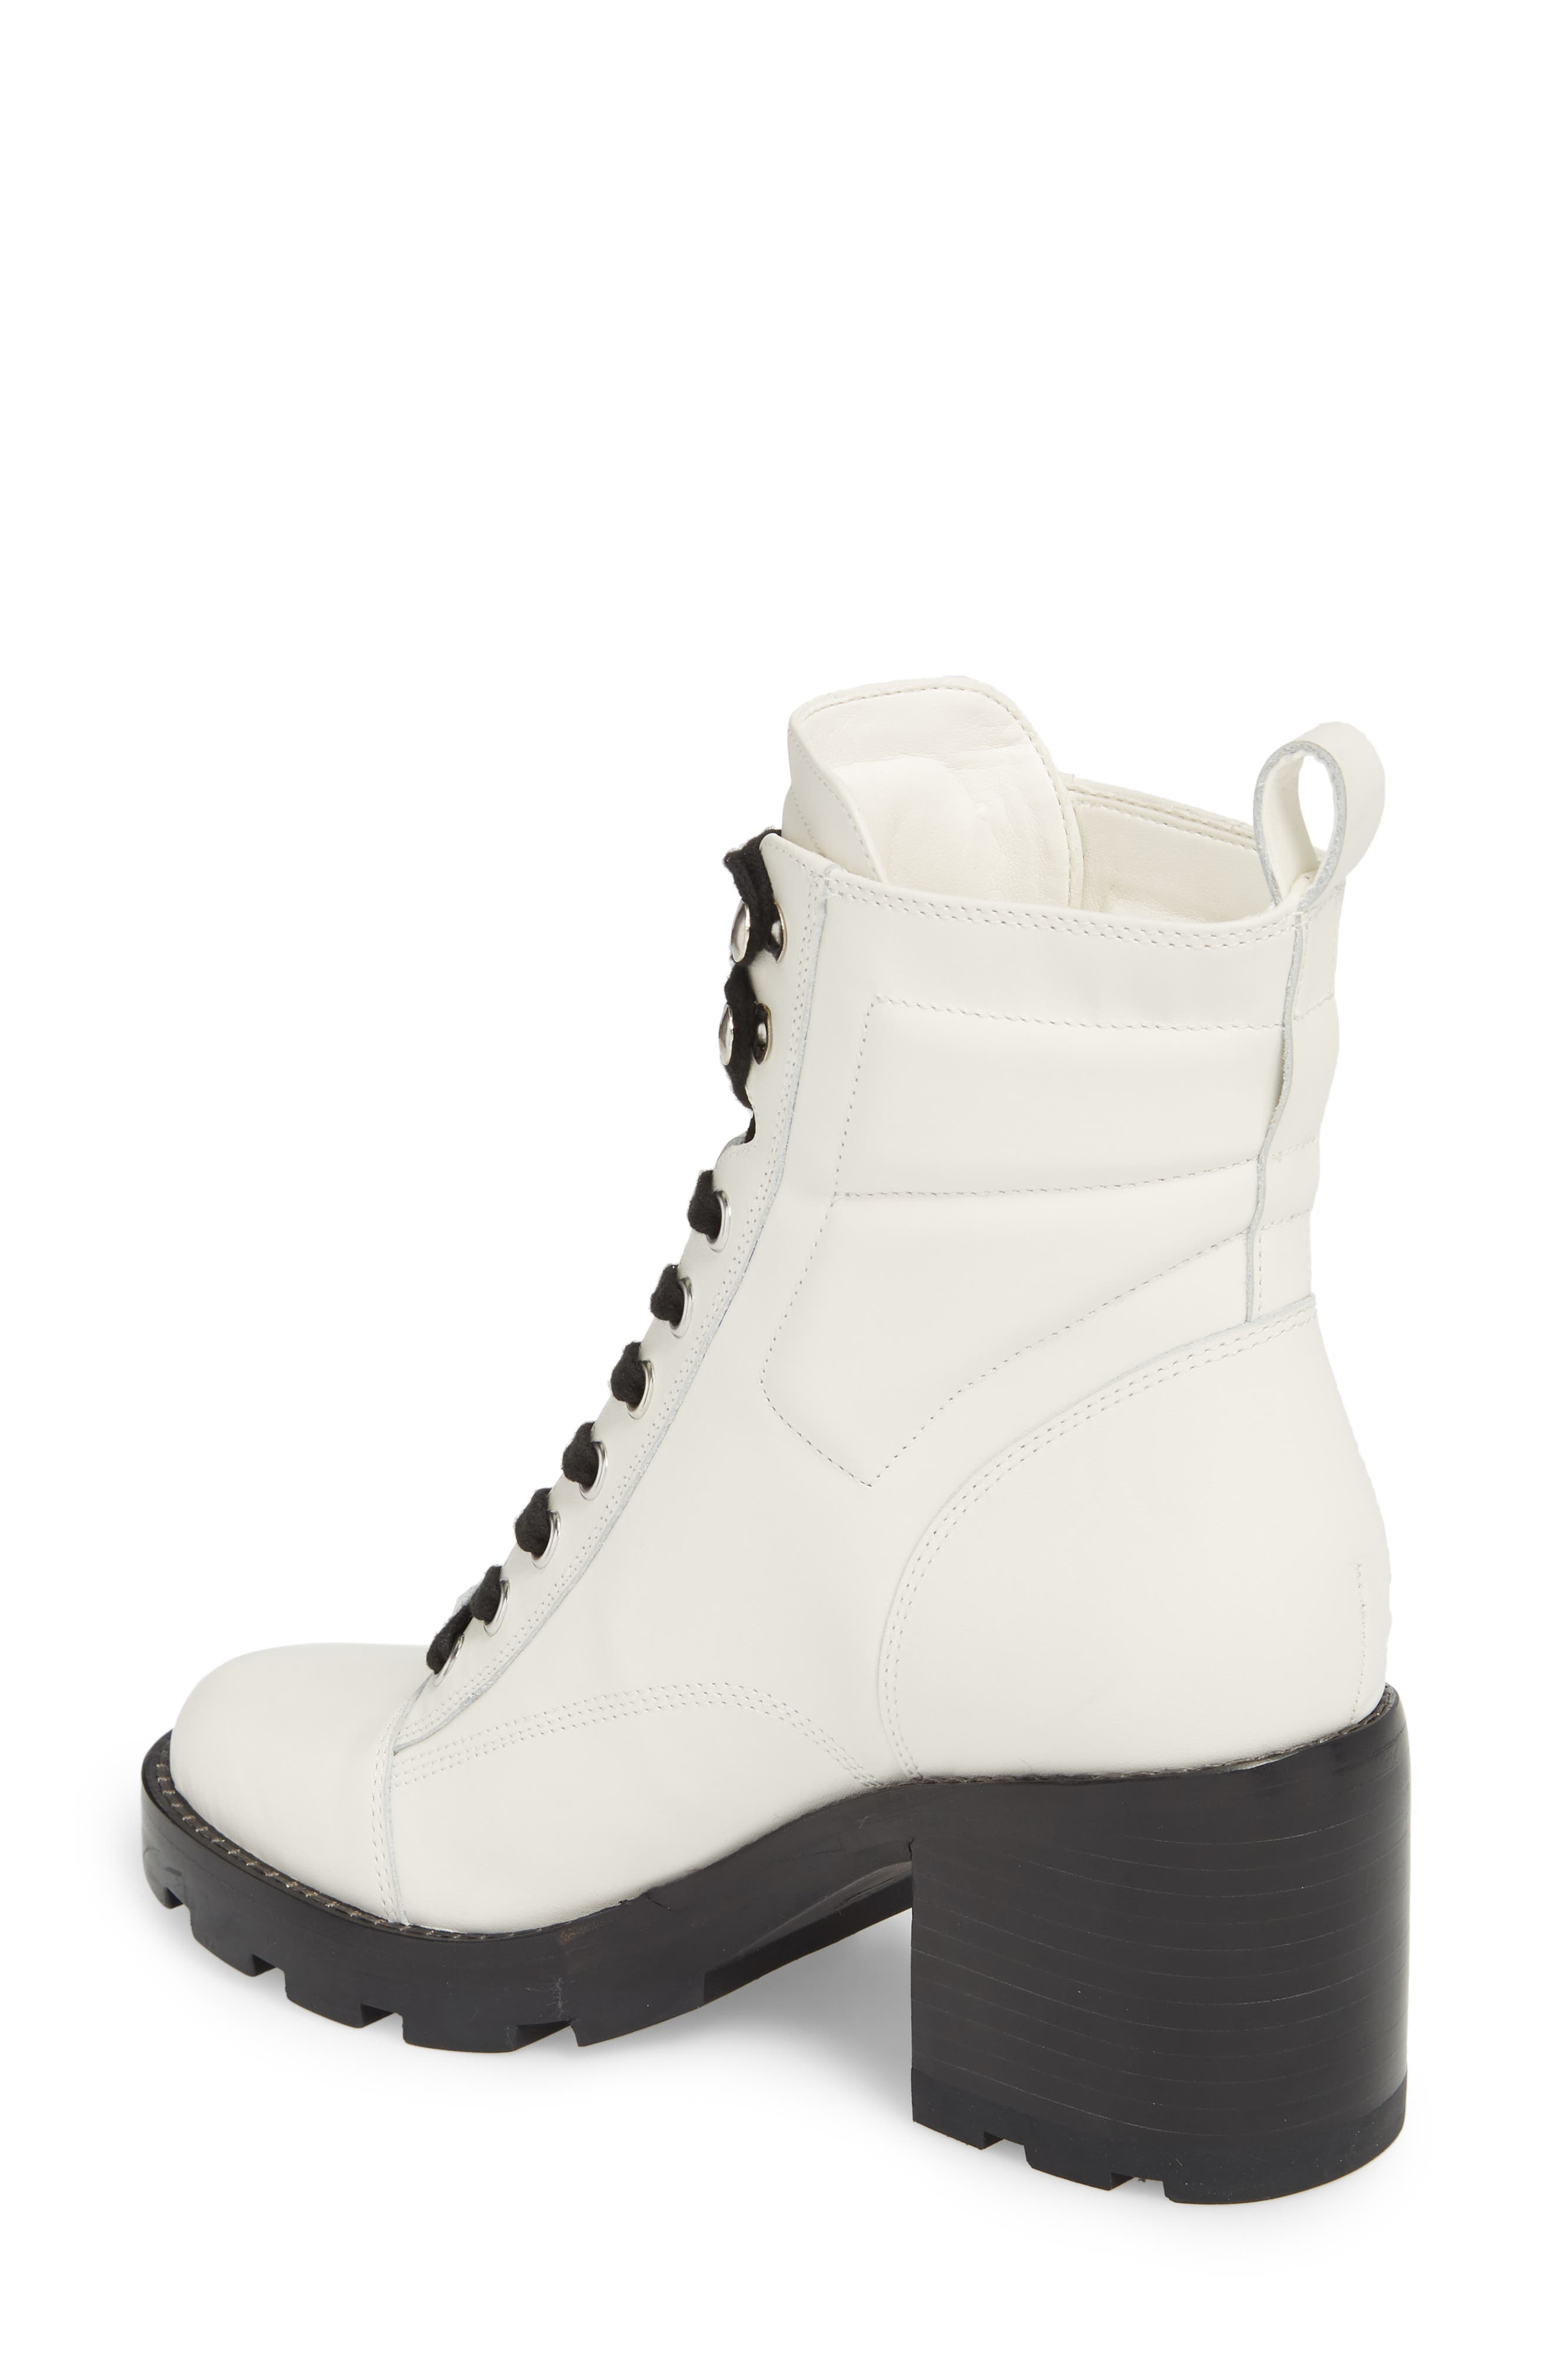 Warid Moto Bootie,                             Alternate thumbnail 2, color,                             IVORY LEATHER